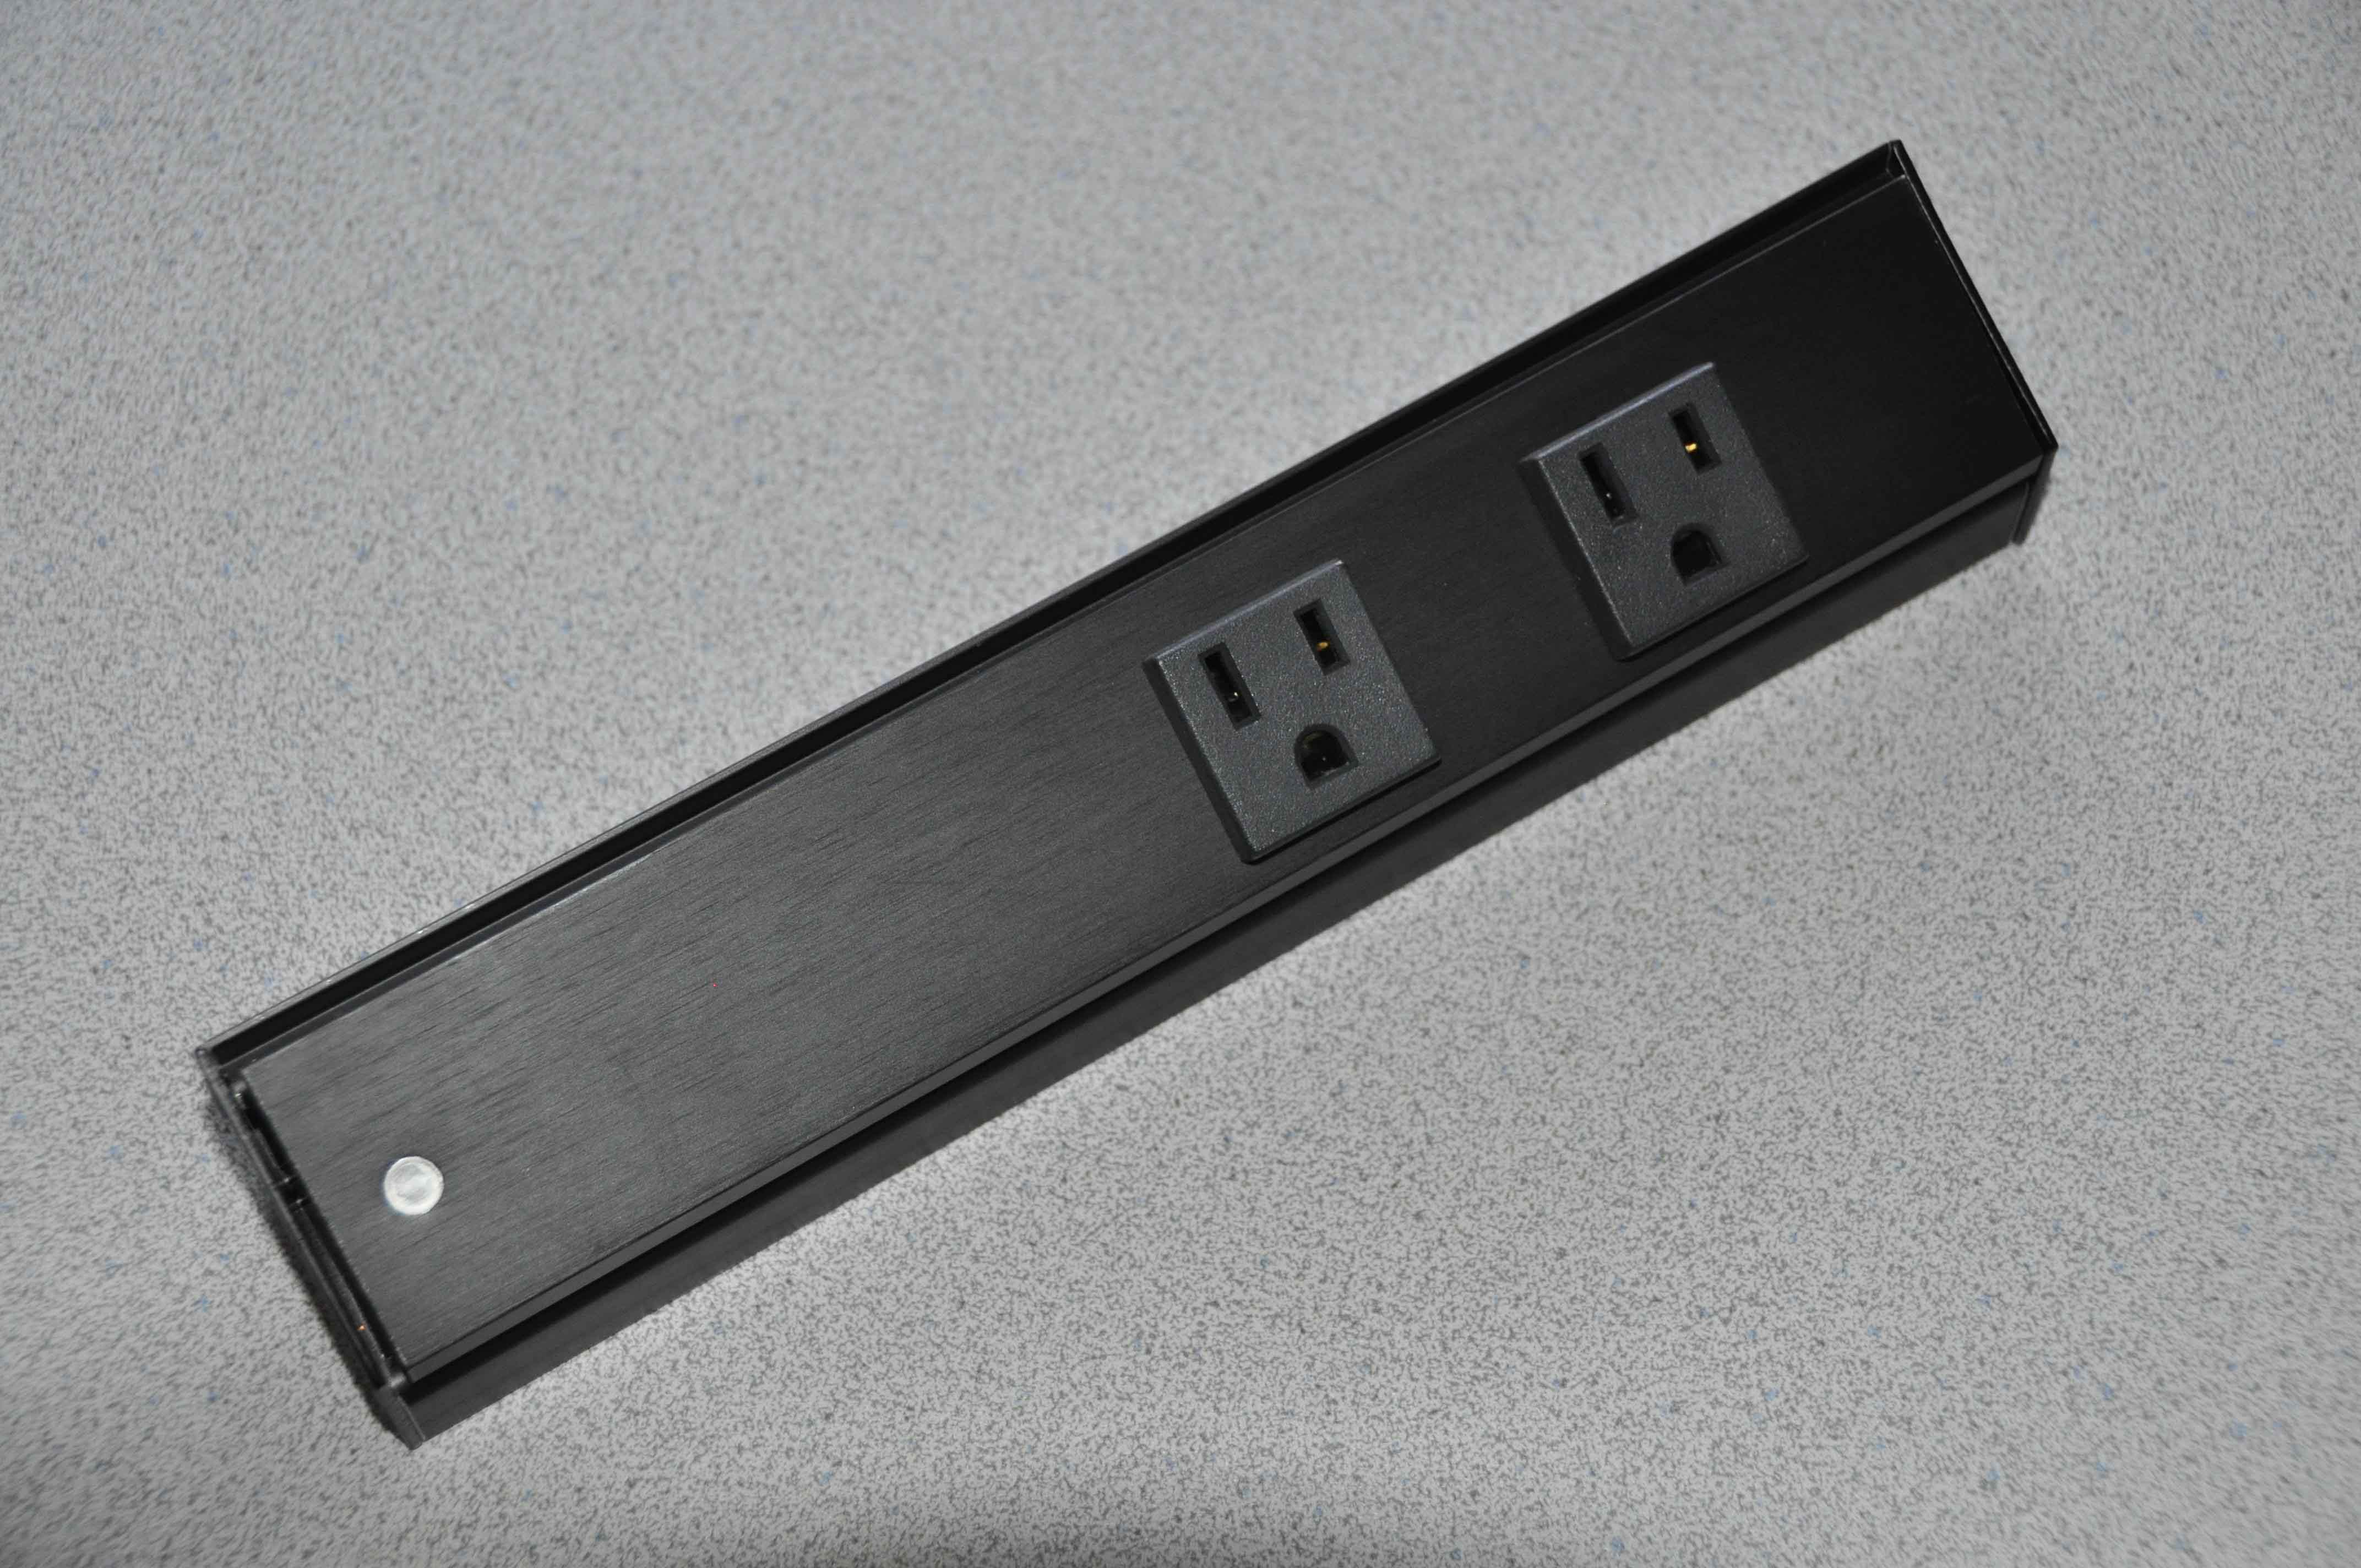 New Slimline Profile Angled Power Strips With Tamper Resistant Outlets  are now available!